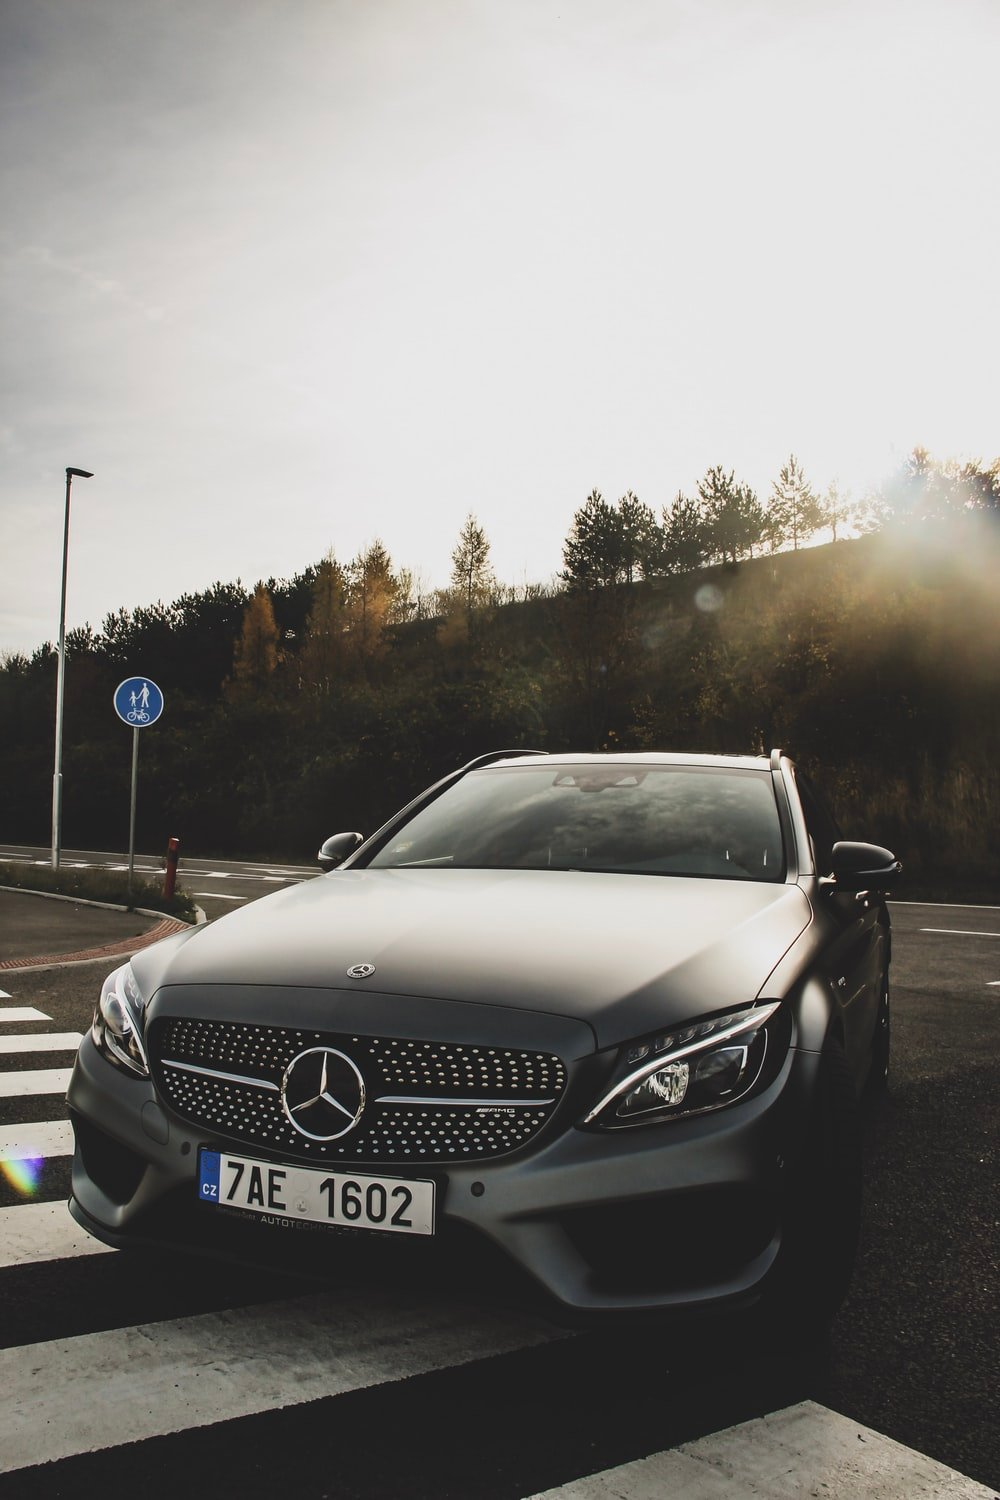 500 Mercedes Pictures Download Images on Unsplash 1000x1500